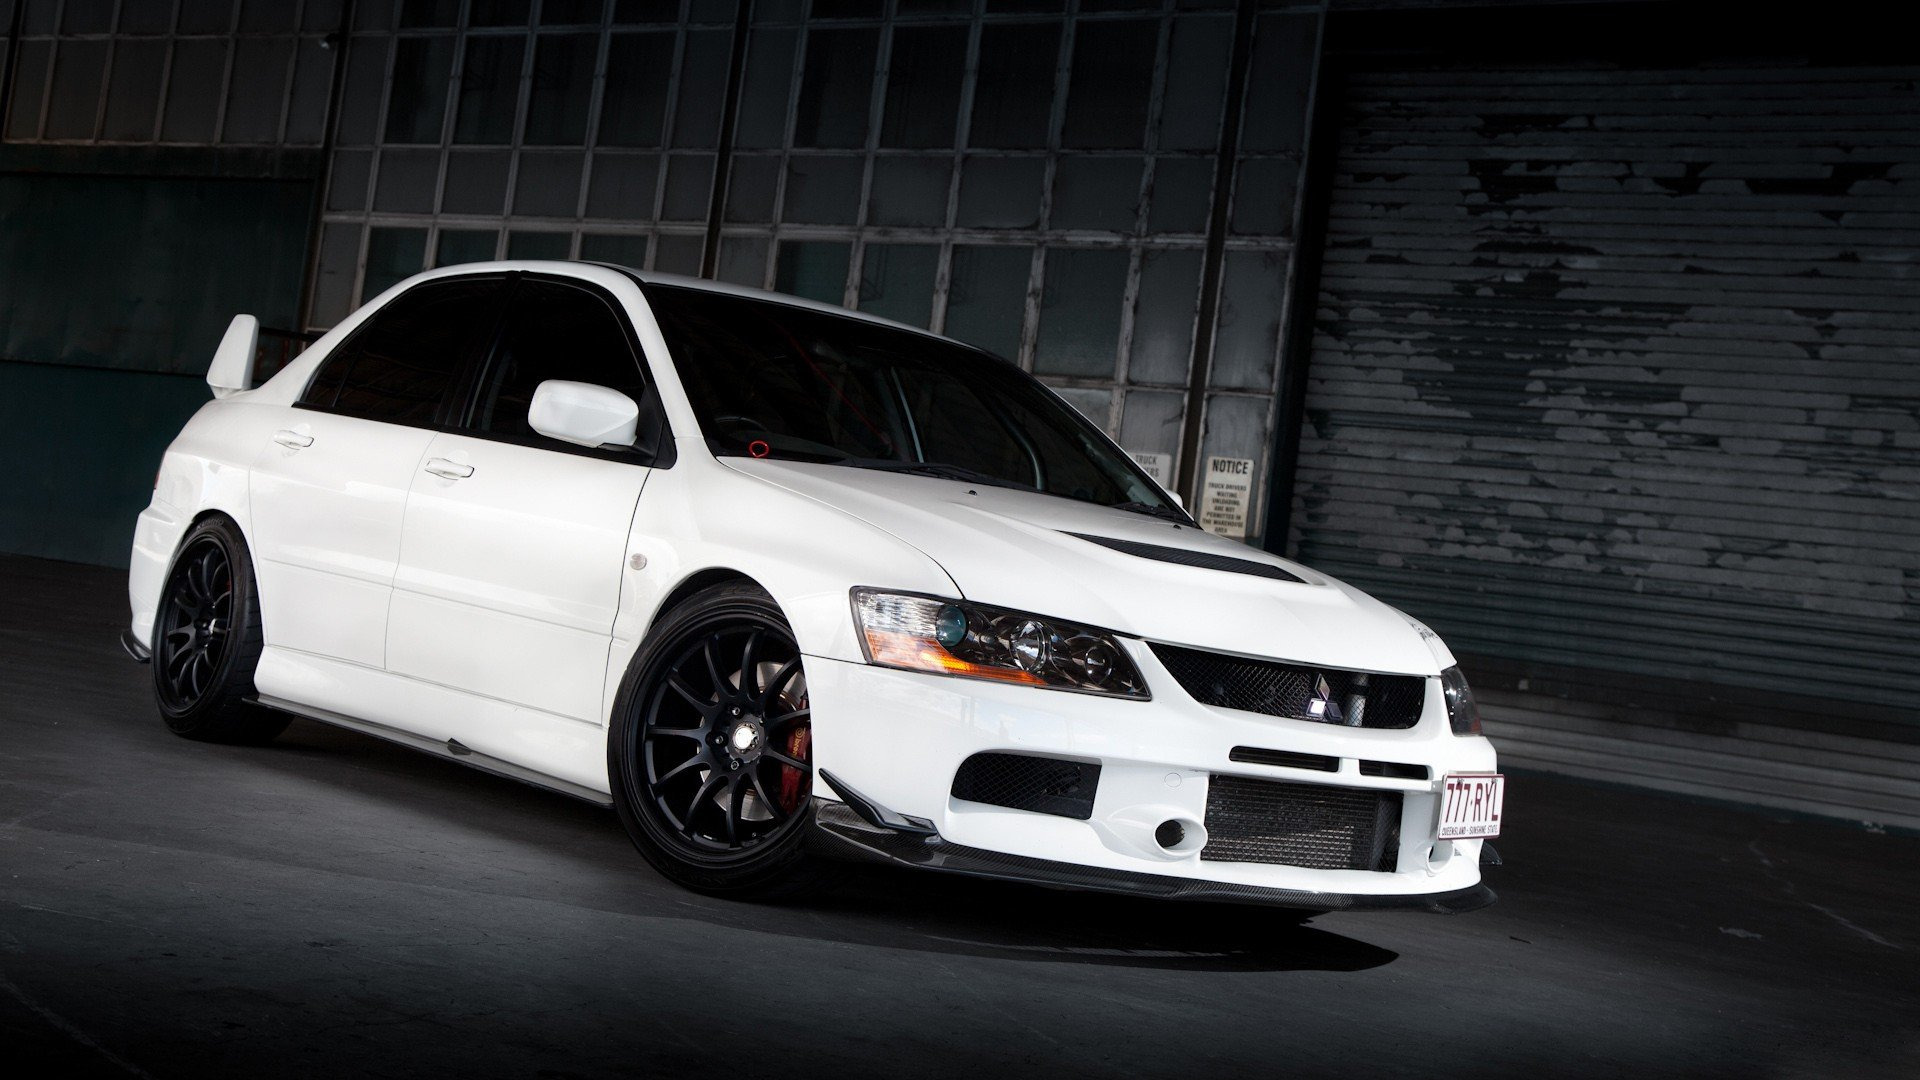 photos mitsubishi lancer evo 8 wallpaper trb 02 evo 8 2 can play